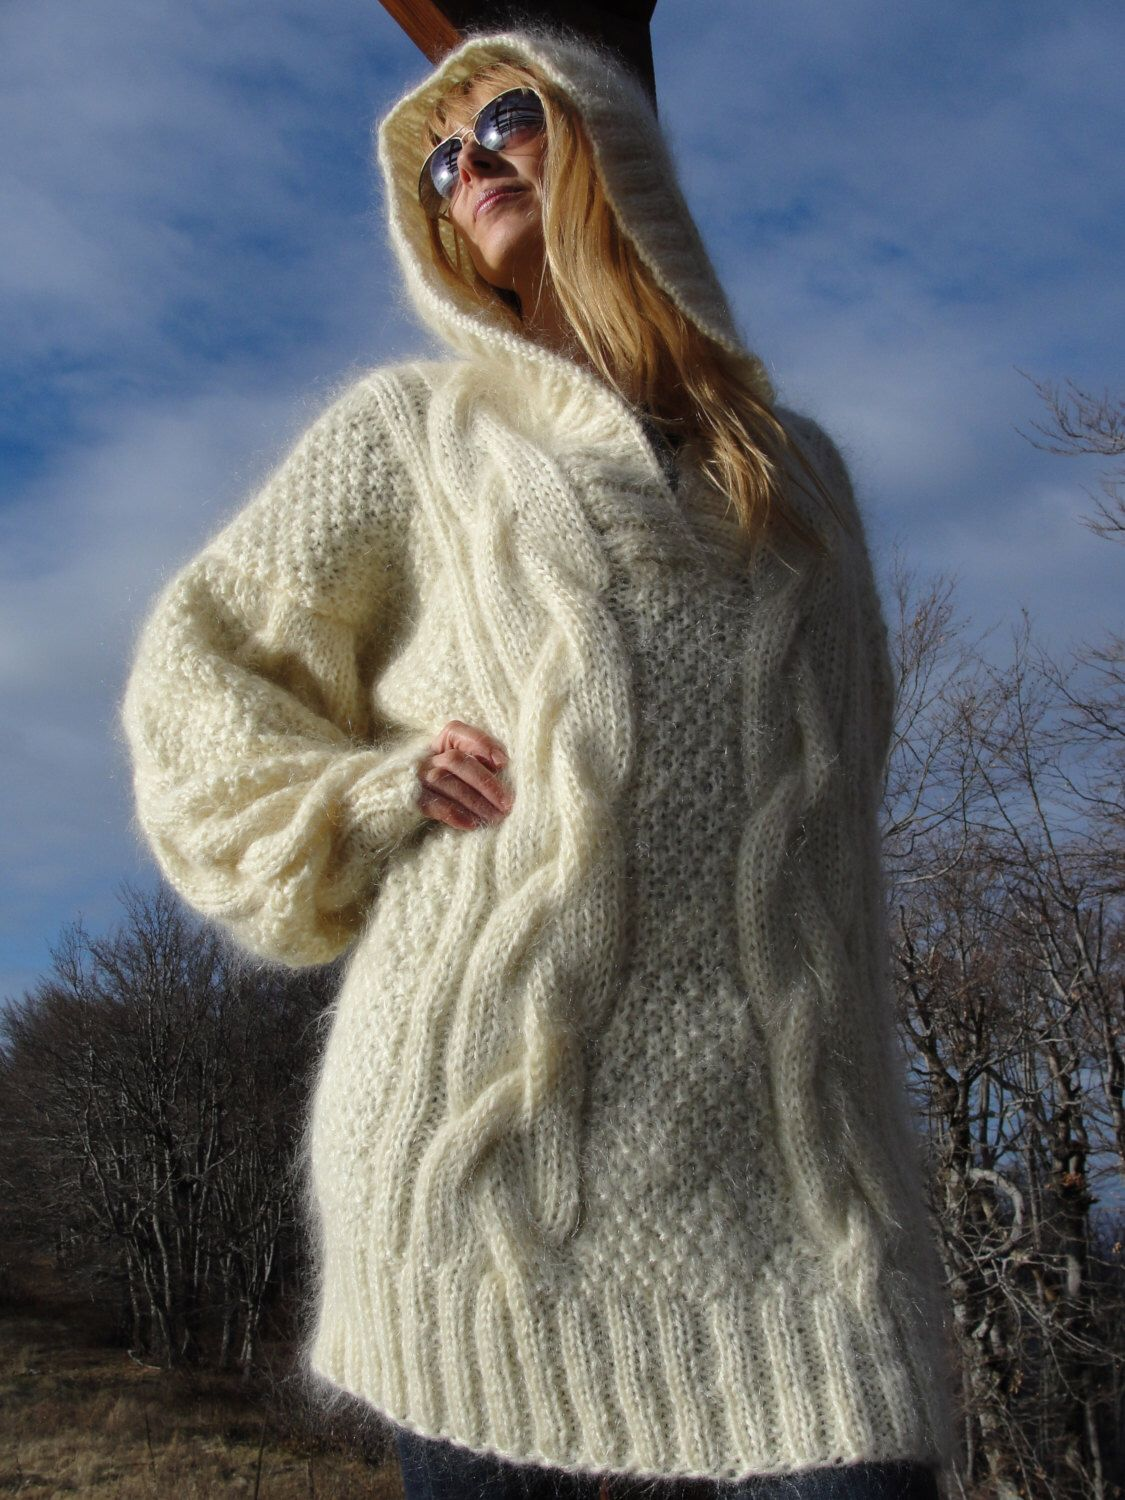 ORDER handmade hooded sweater mohair sweater hand knitted pullover ...